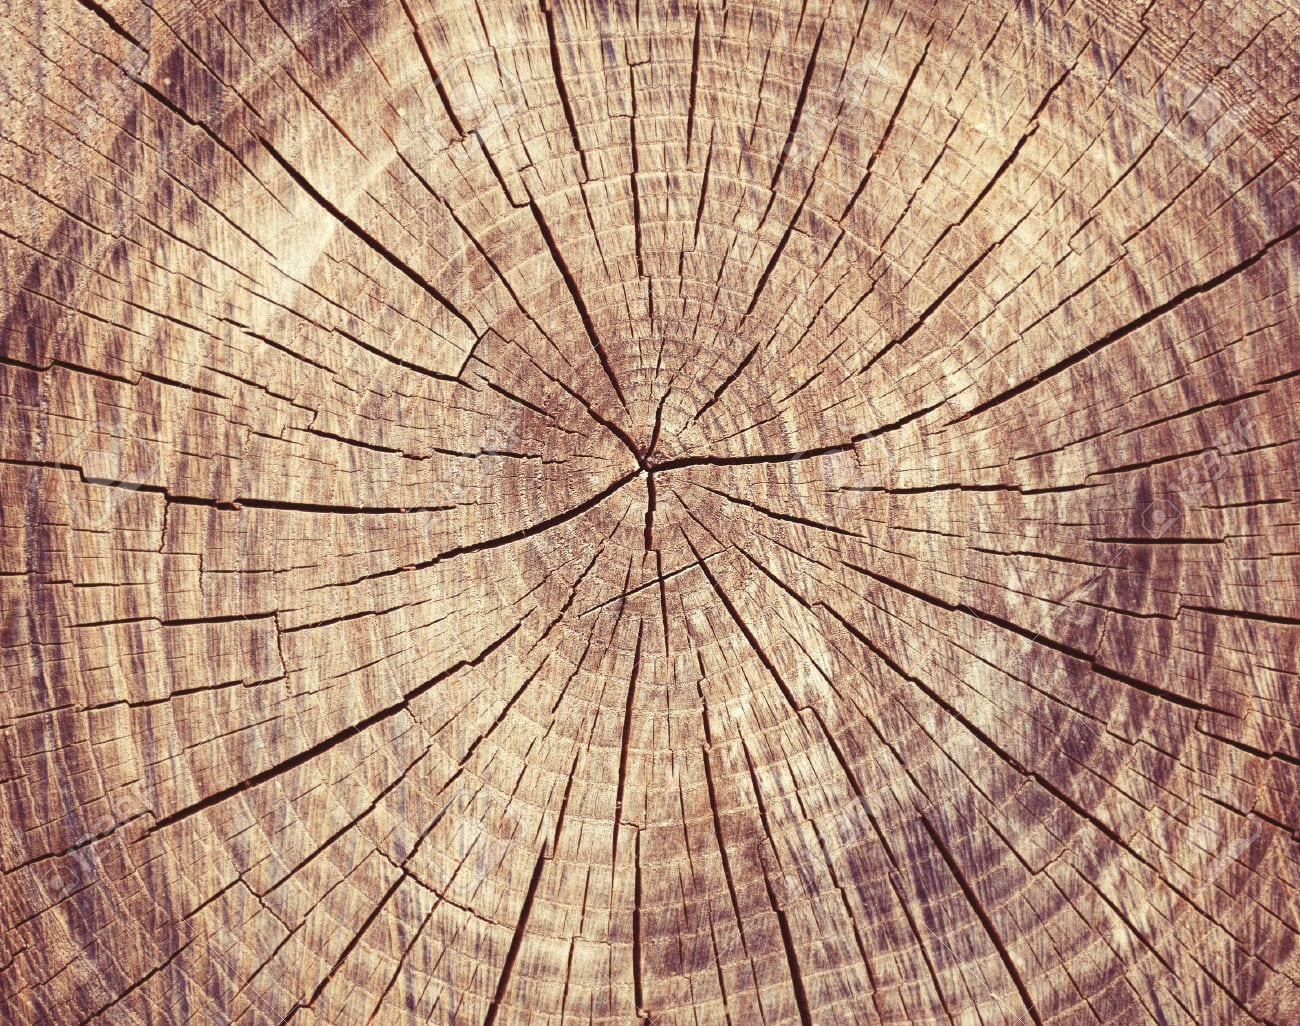 res rings detail full growth section high trunk annual picture tree photo showing stock cross frame photography